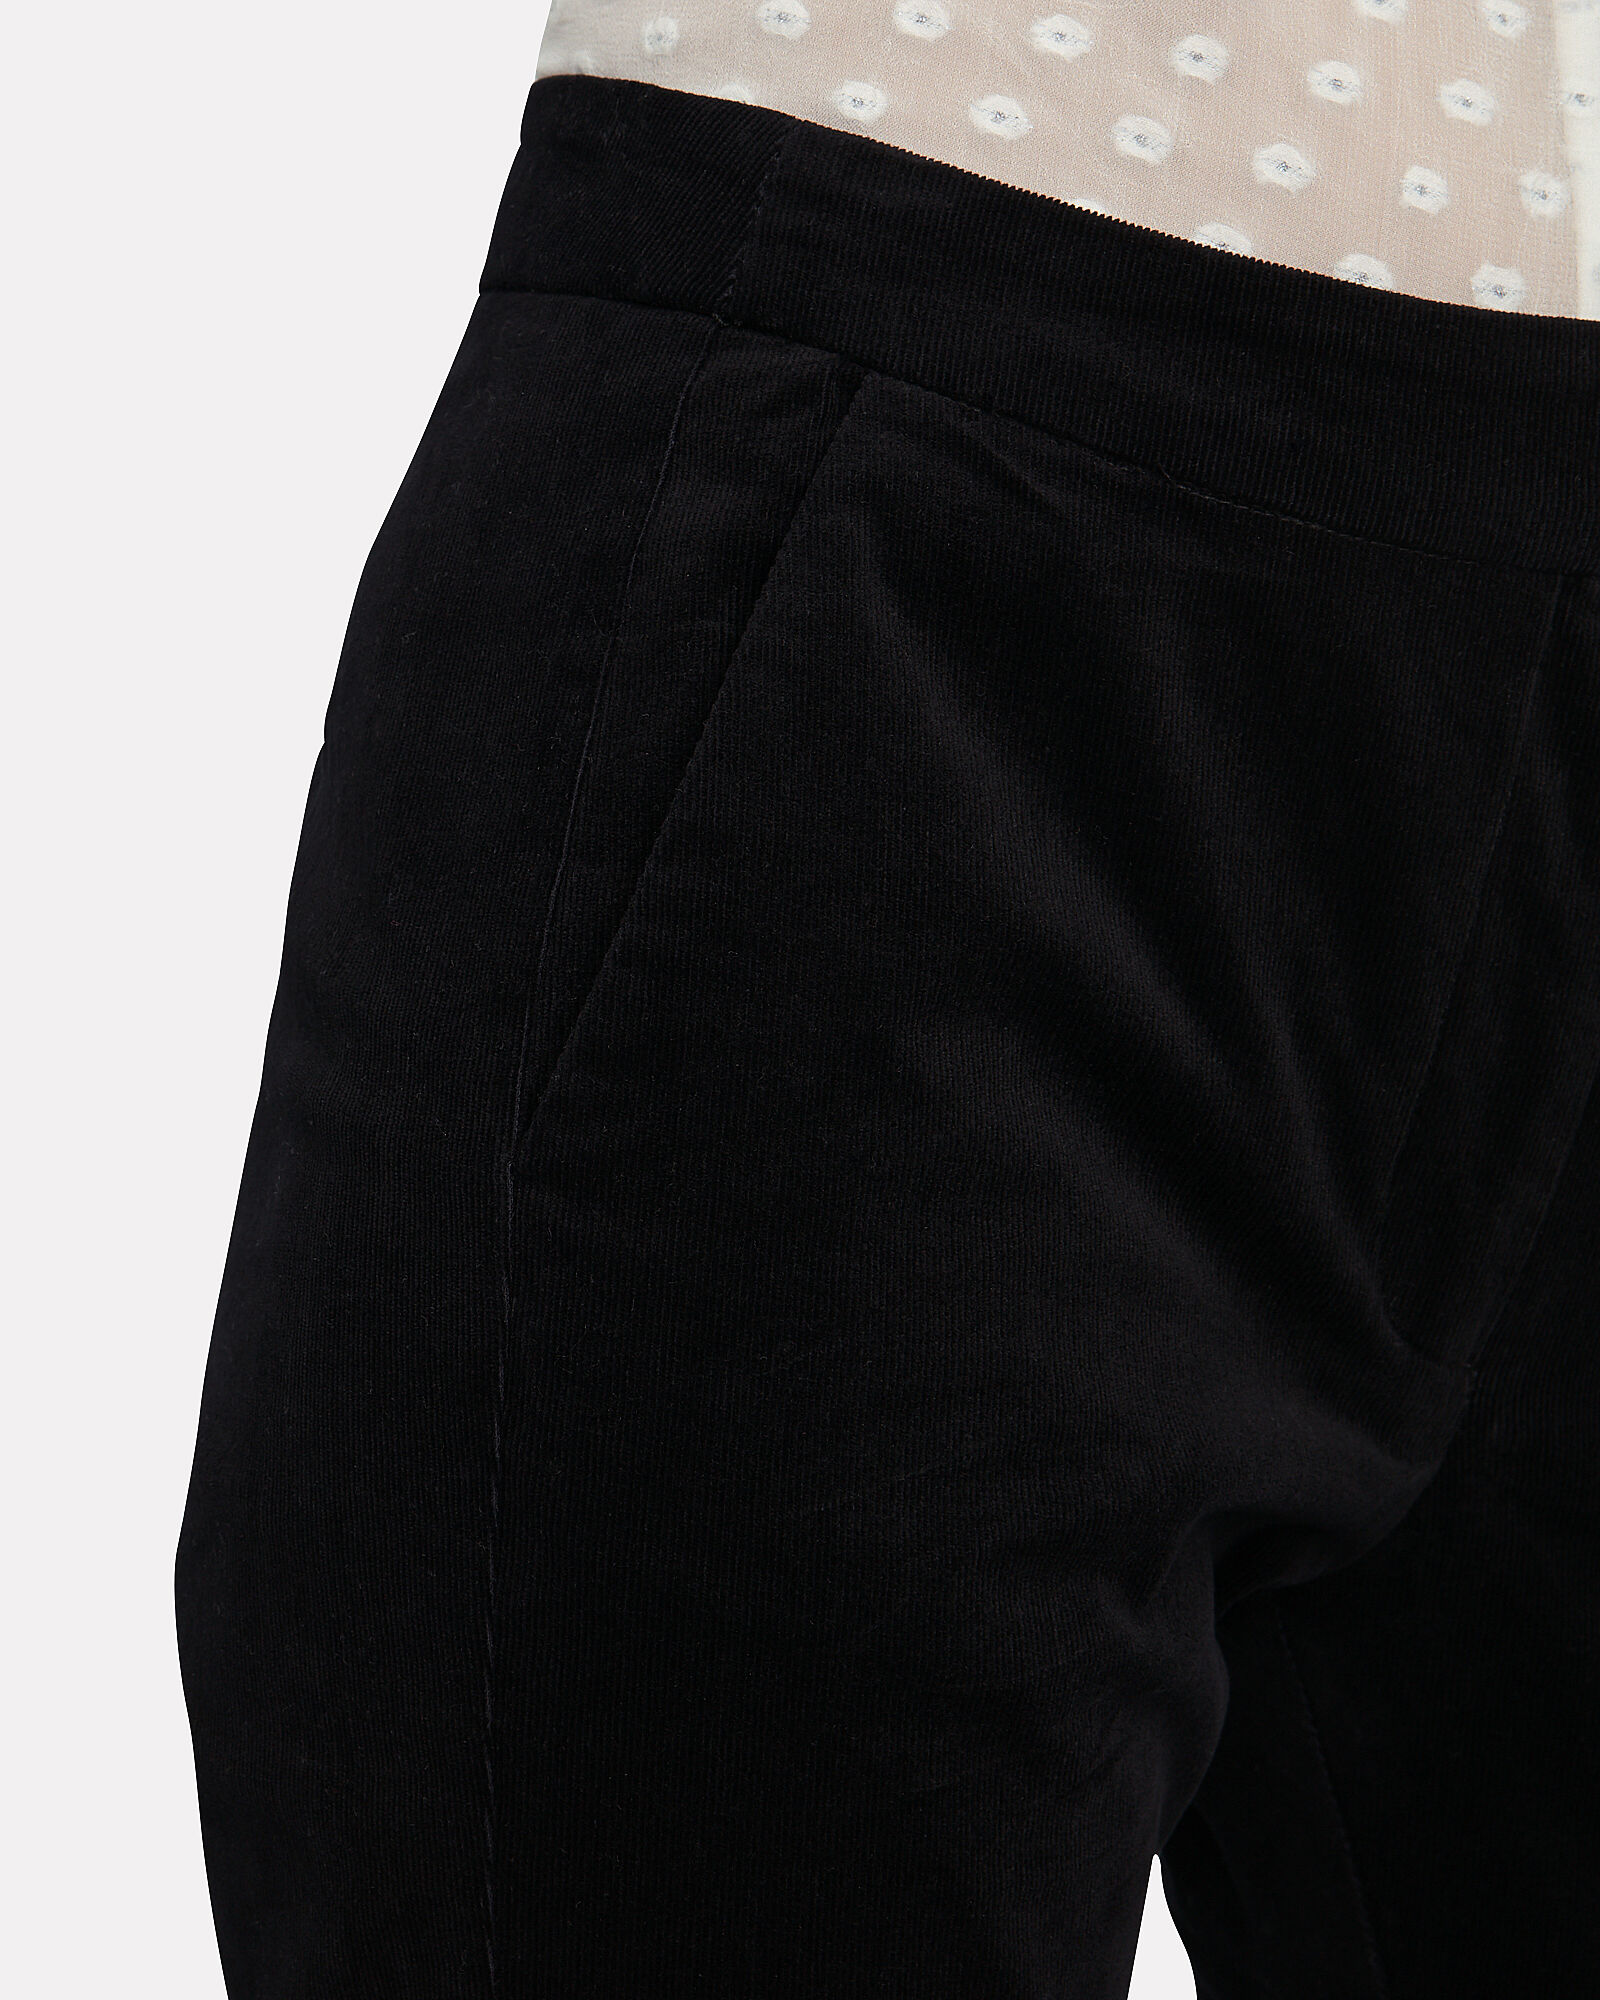 Jovie Flared Corduroy Pants, BLACK, hi-res